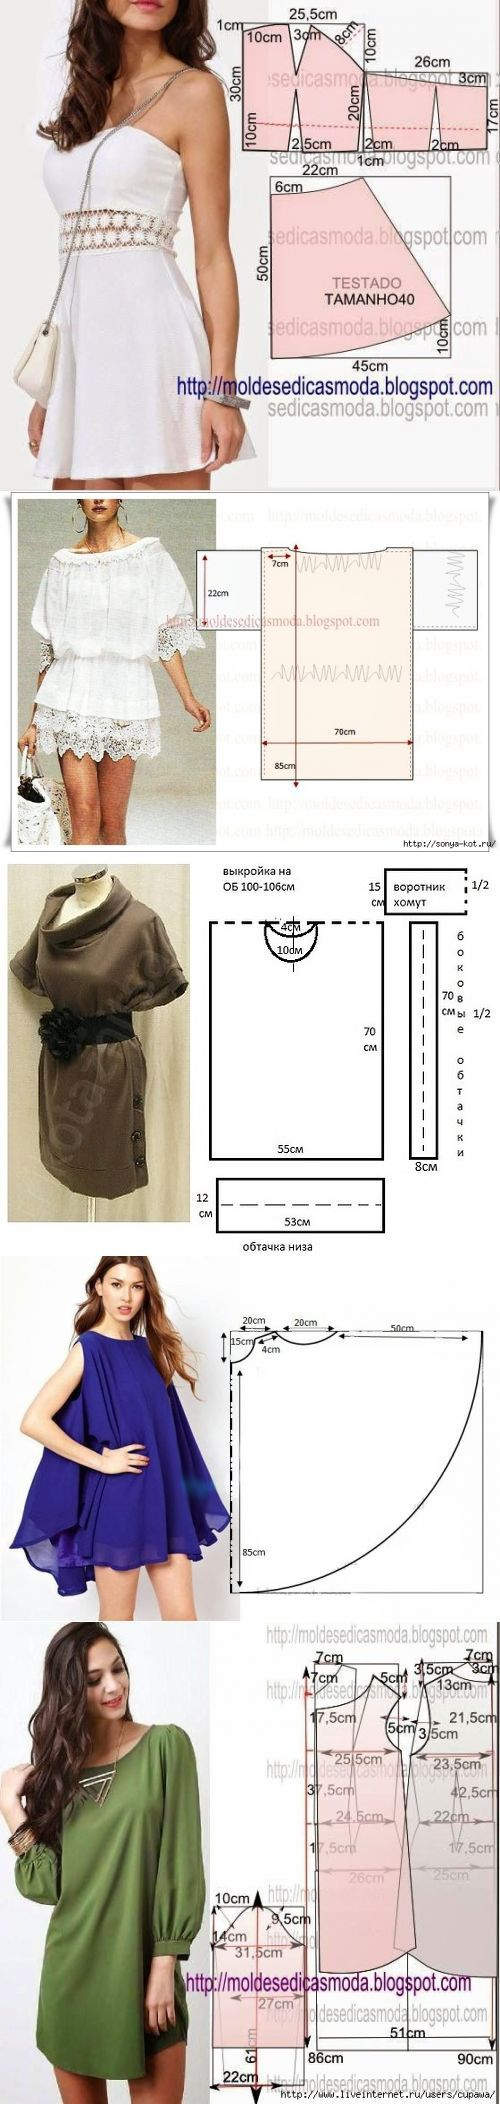 1046 best Costura images on Pinterest | Sewing patterns, Sewing ...